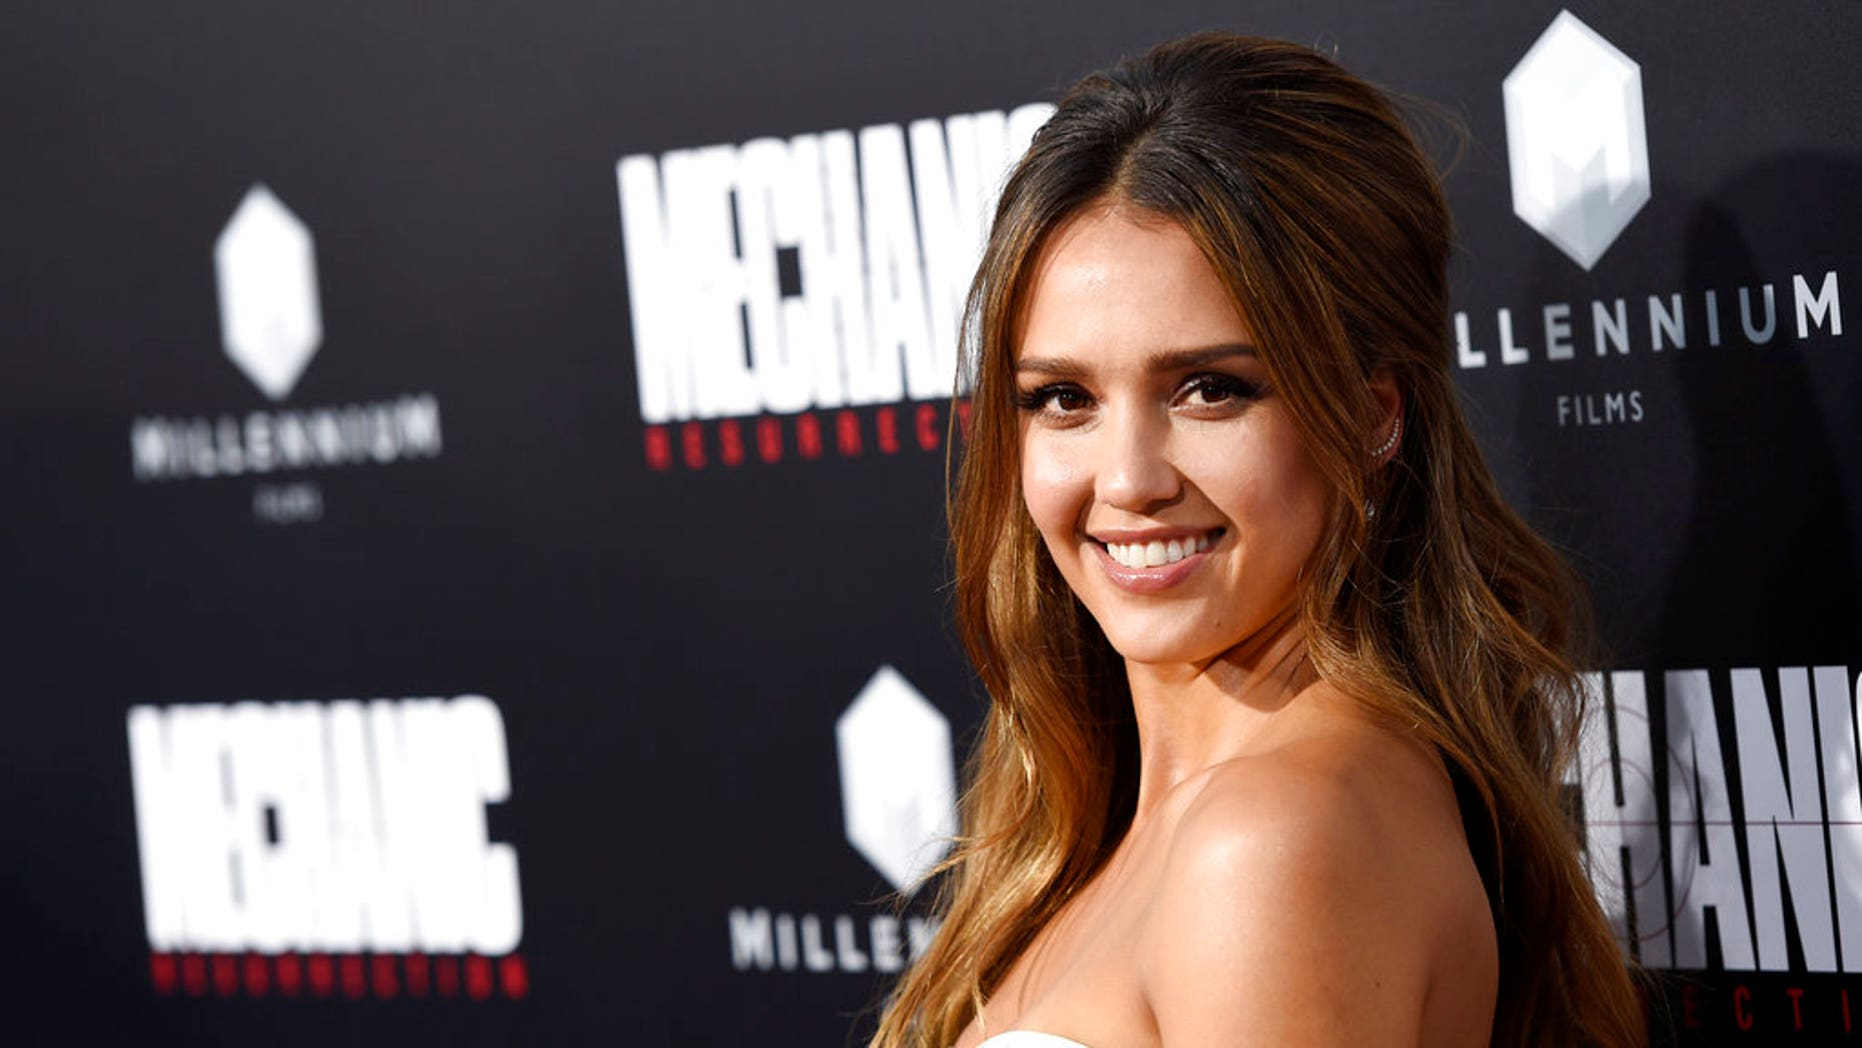 """Jessica Alba, a cast member in """"Mechanic: Resurrection,"""" poses at the premiere of the film at the Arclight Hollywood in Los Angeles. (Associated Press)"""